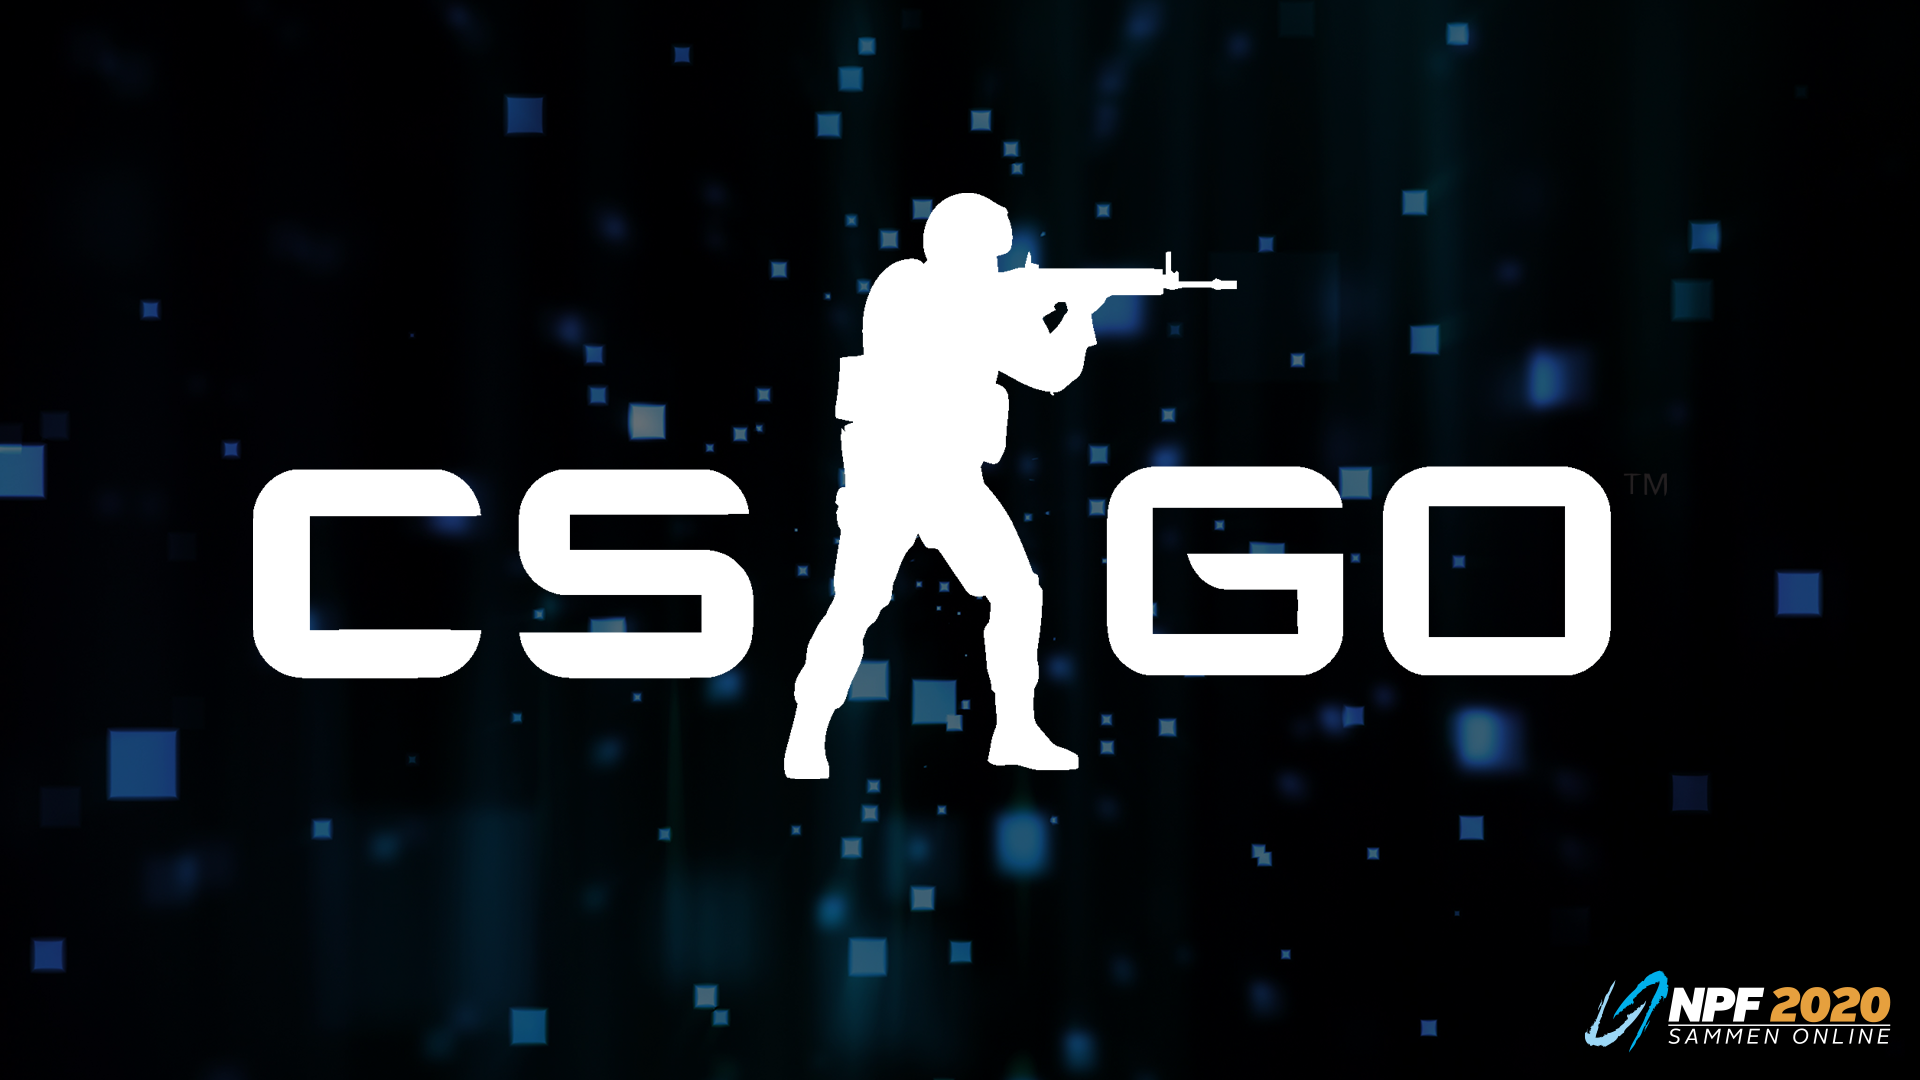 Counter-Strike: Globan Offensive turnering til NPF 2020